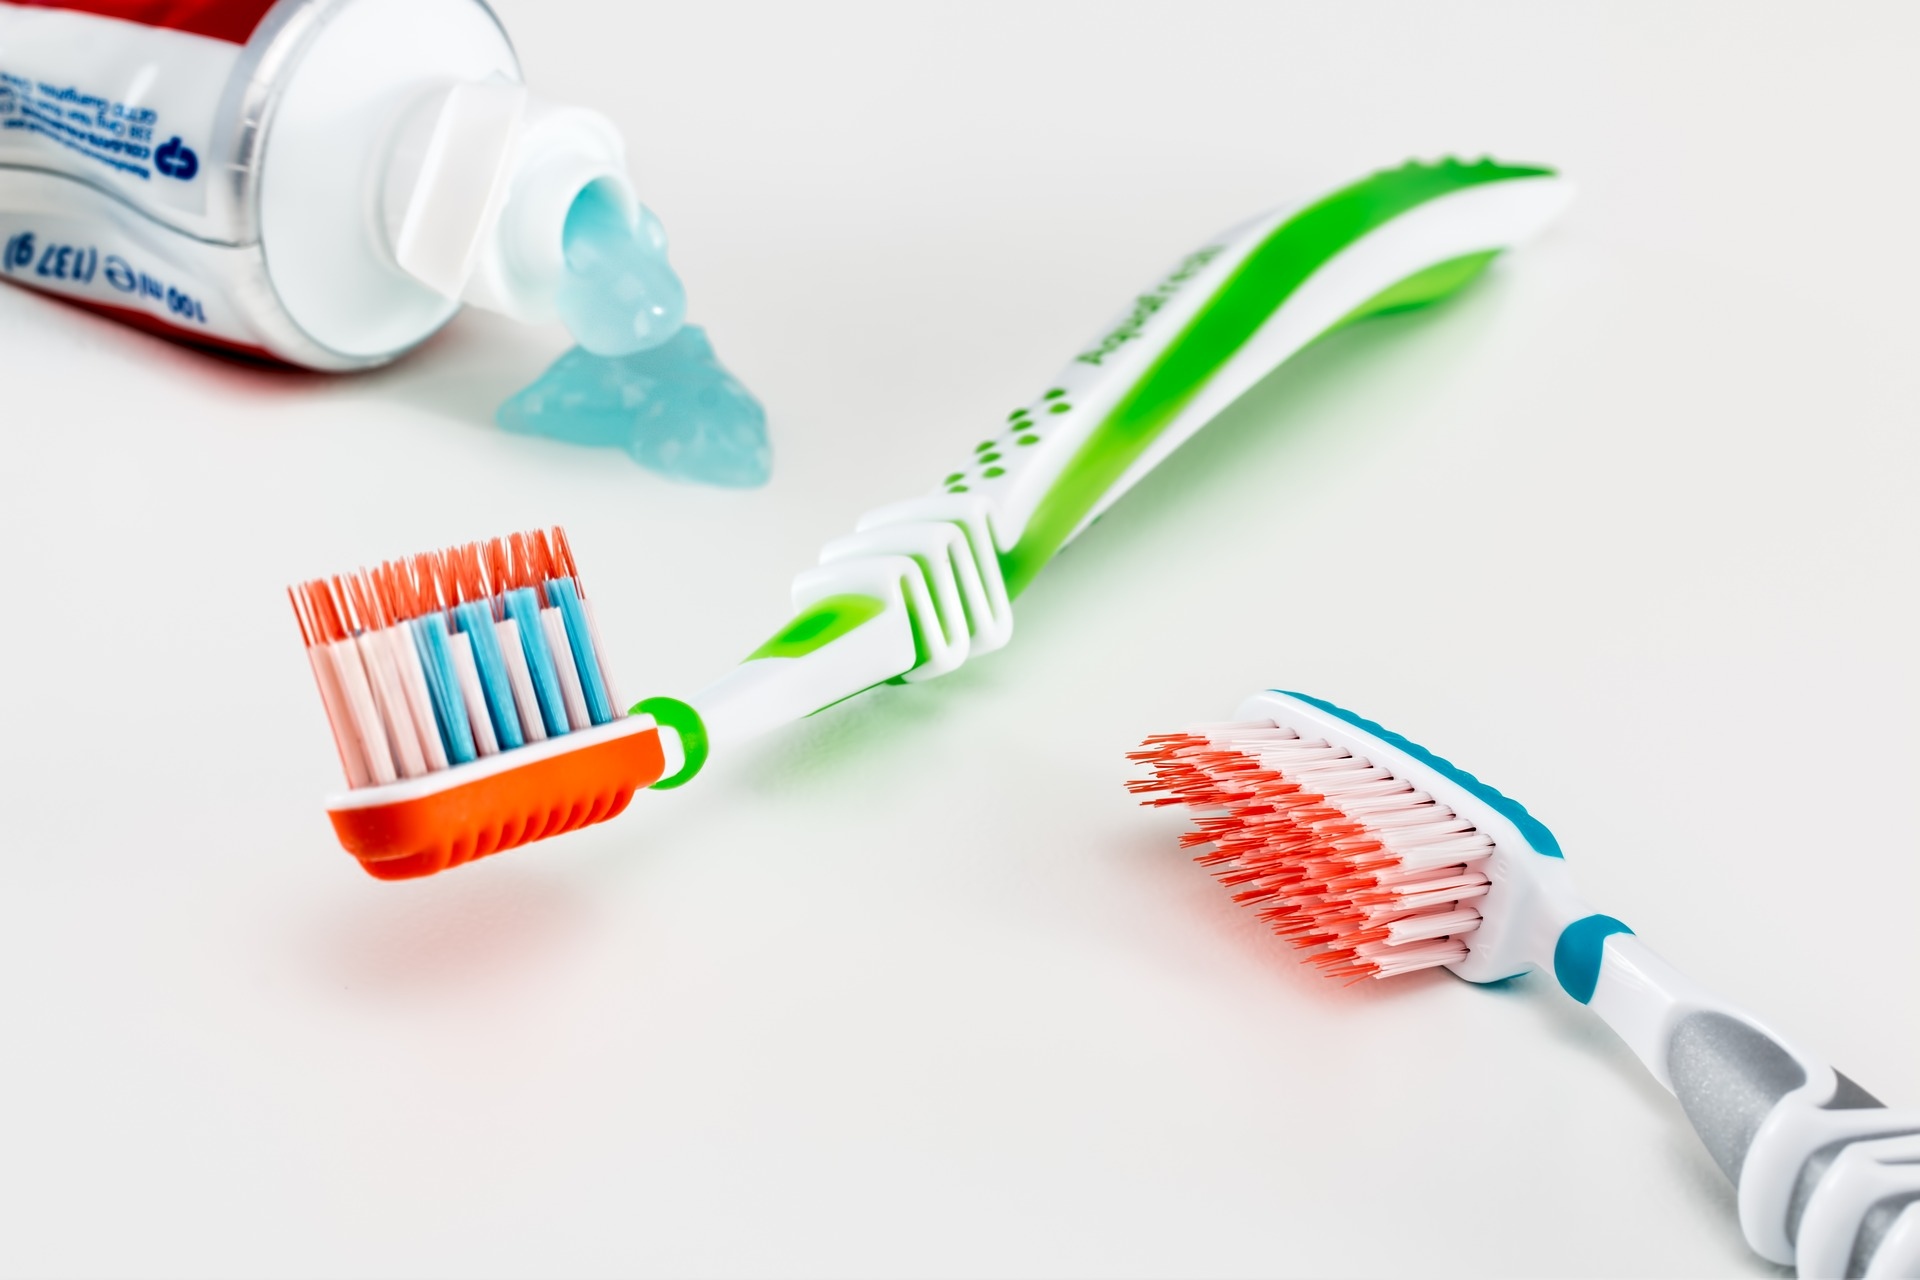 Toothbrush-and-Toothpaste